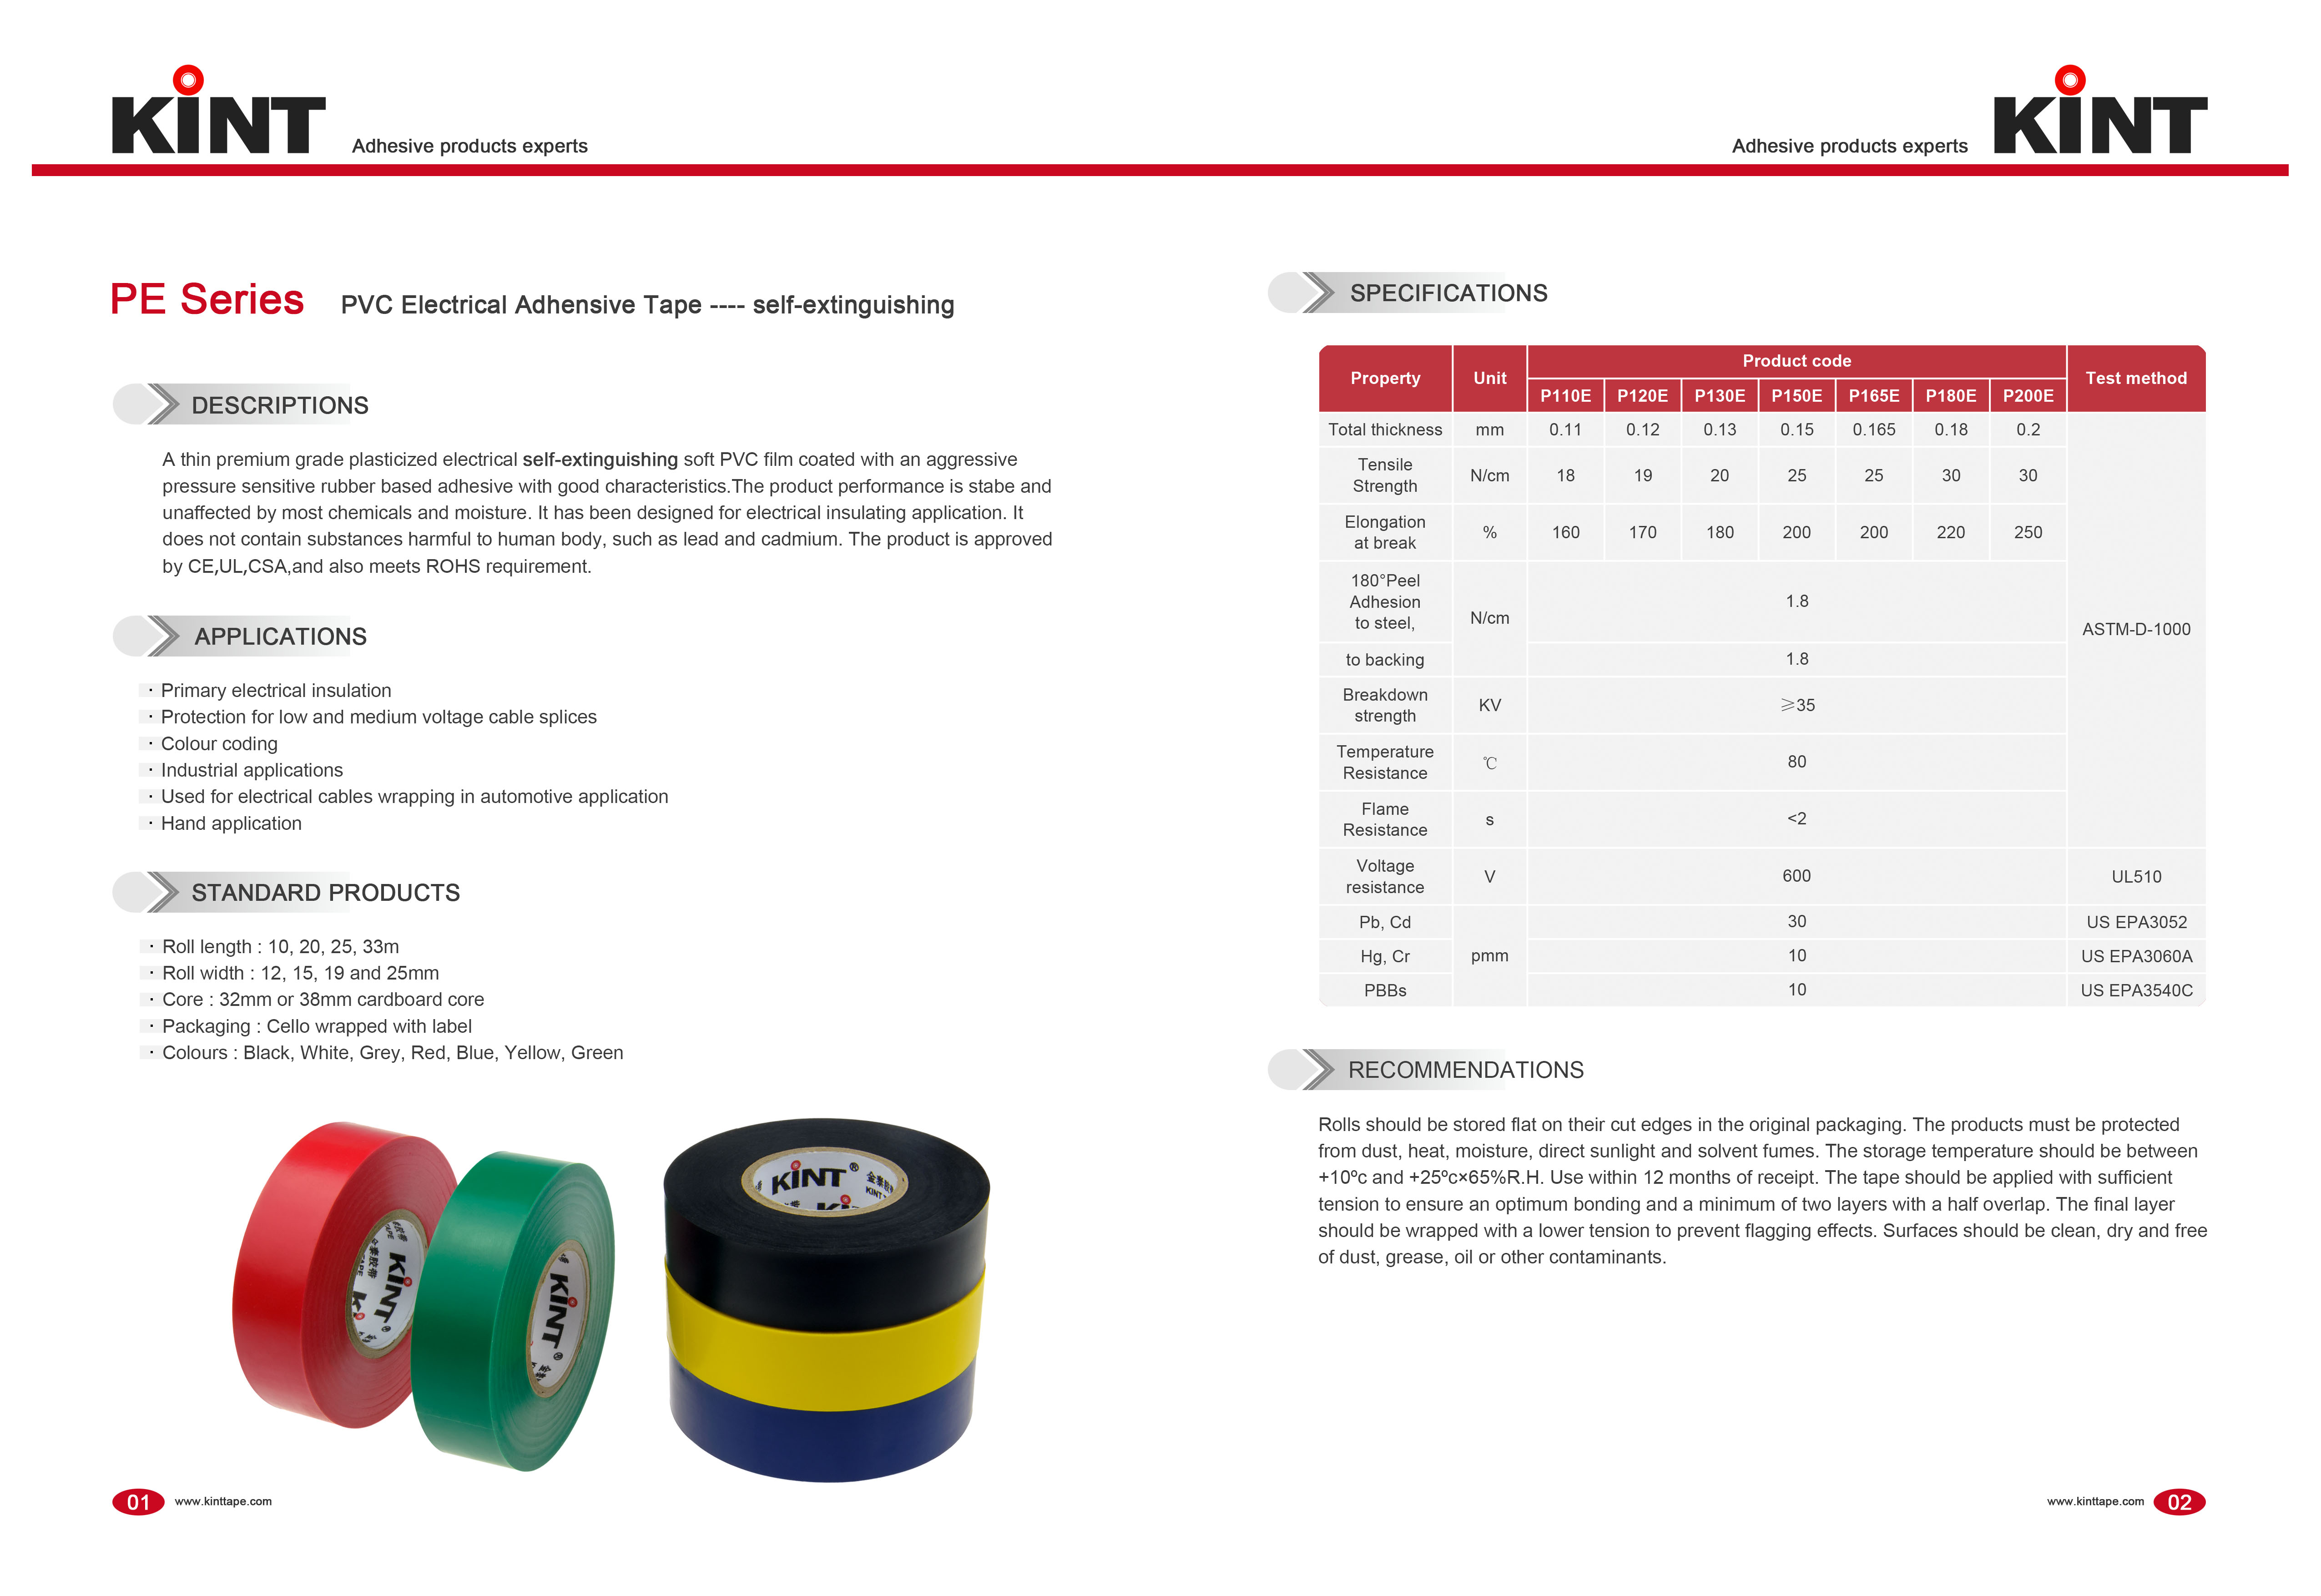 New pvc electrical tape adhensive factory for electrical insulating application-3